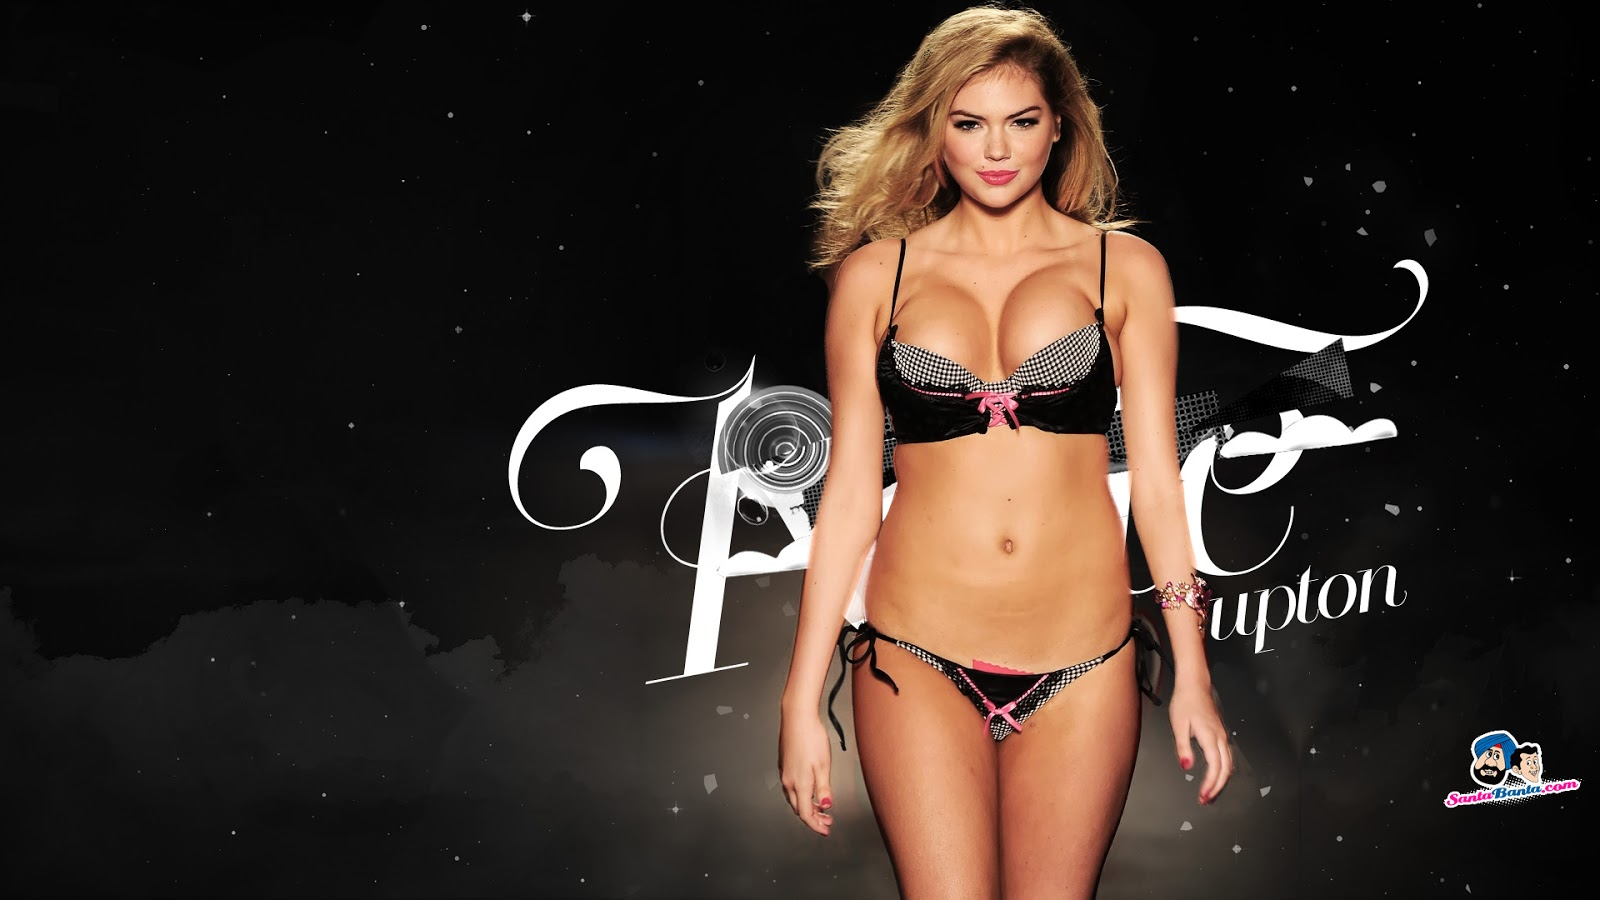 Hottest girl in the world 2012 top 10